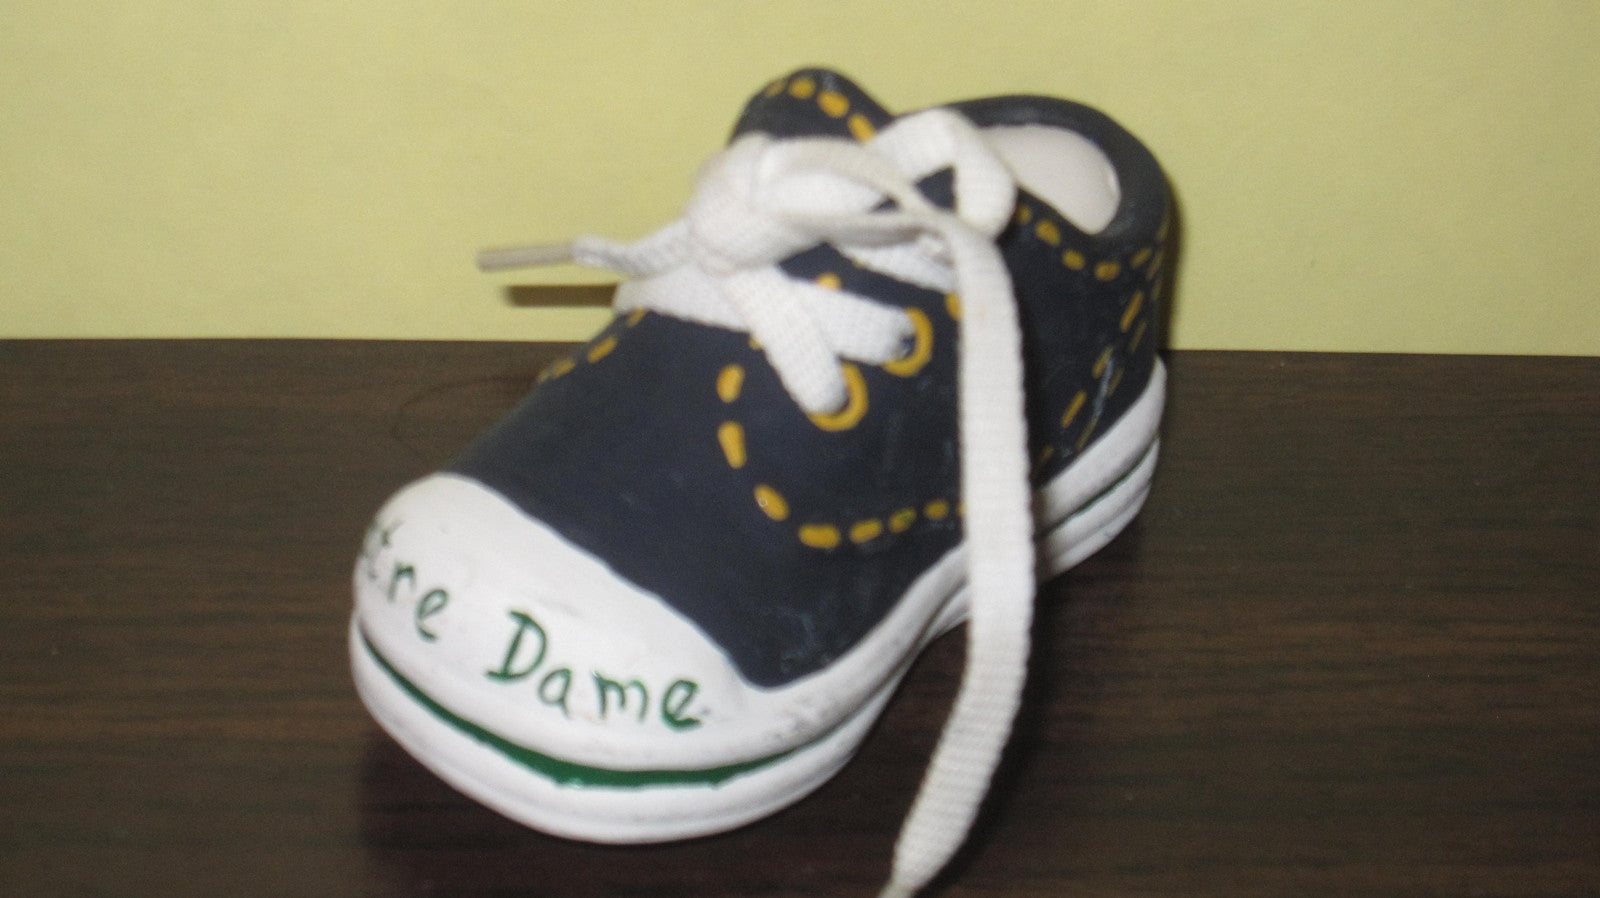 Notre Dame Hand Painted Ceramic Mini Basketball Sneaker - Vintage Indy Sports